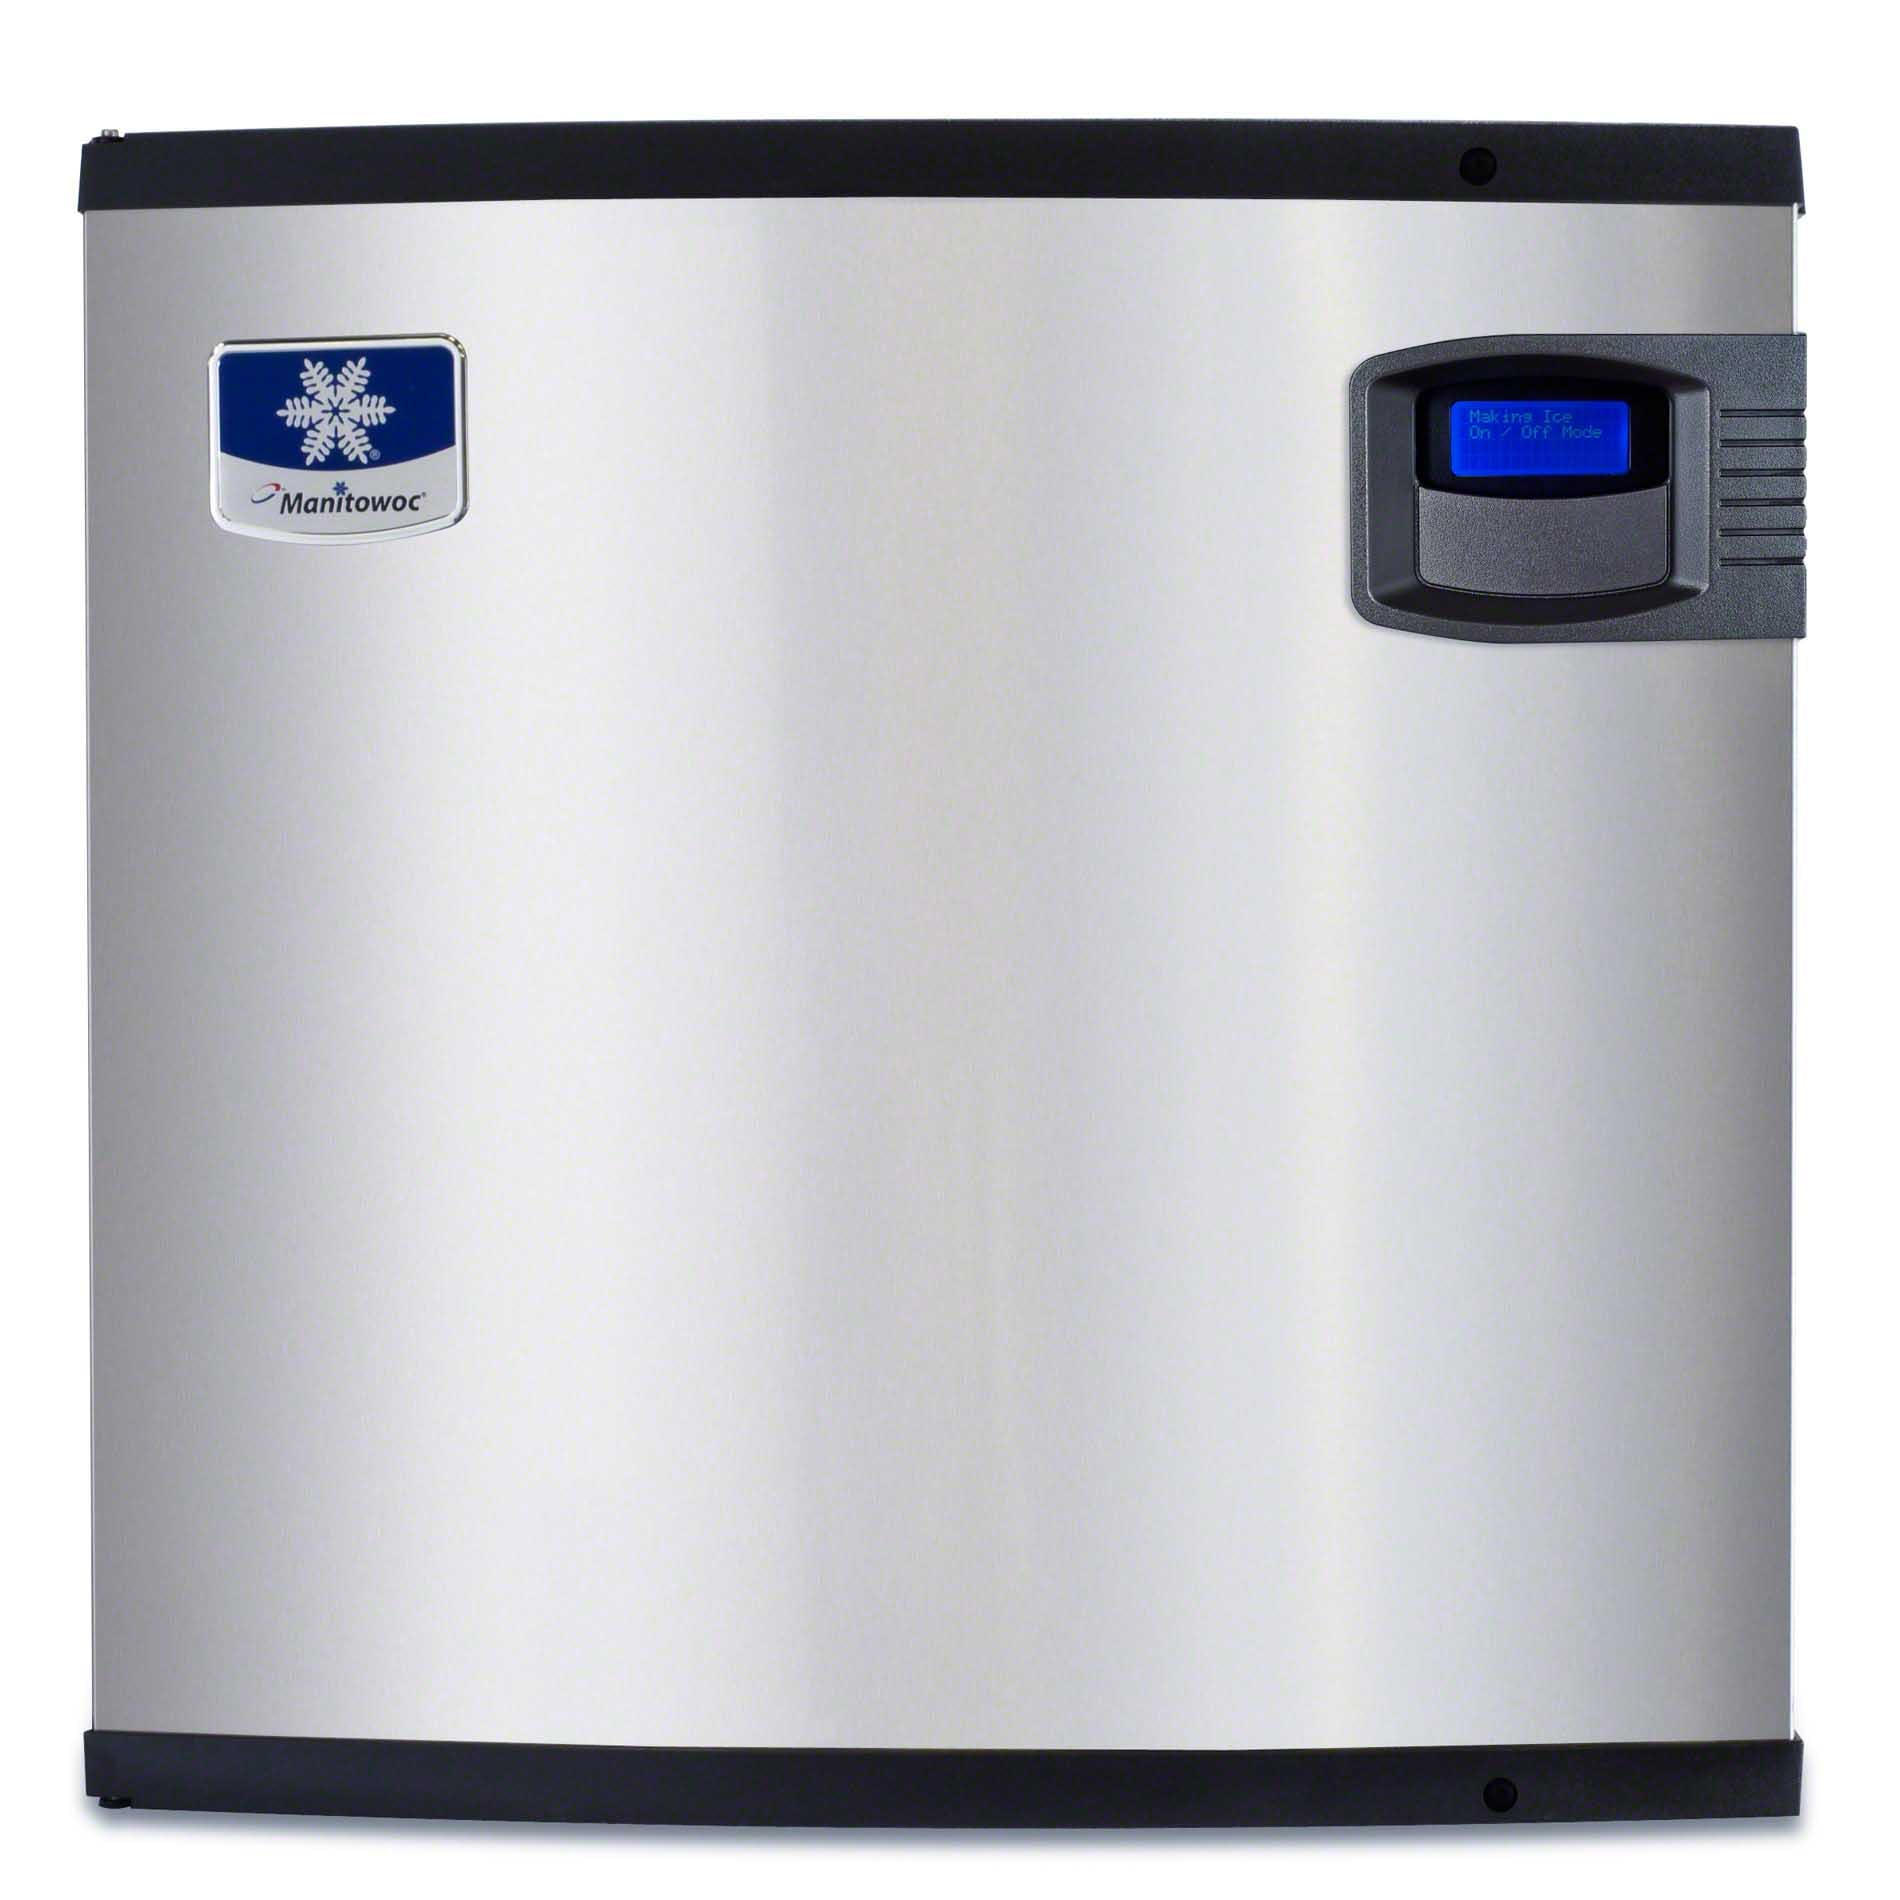 Manitowoc - ID-0523W 460 lb Full Size Cube Ice Machine - Indigo Series - sold by Food Service Warehouse